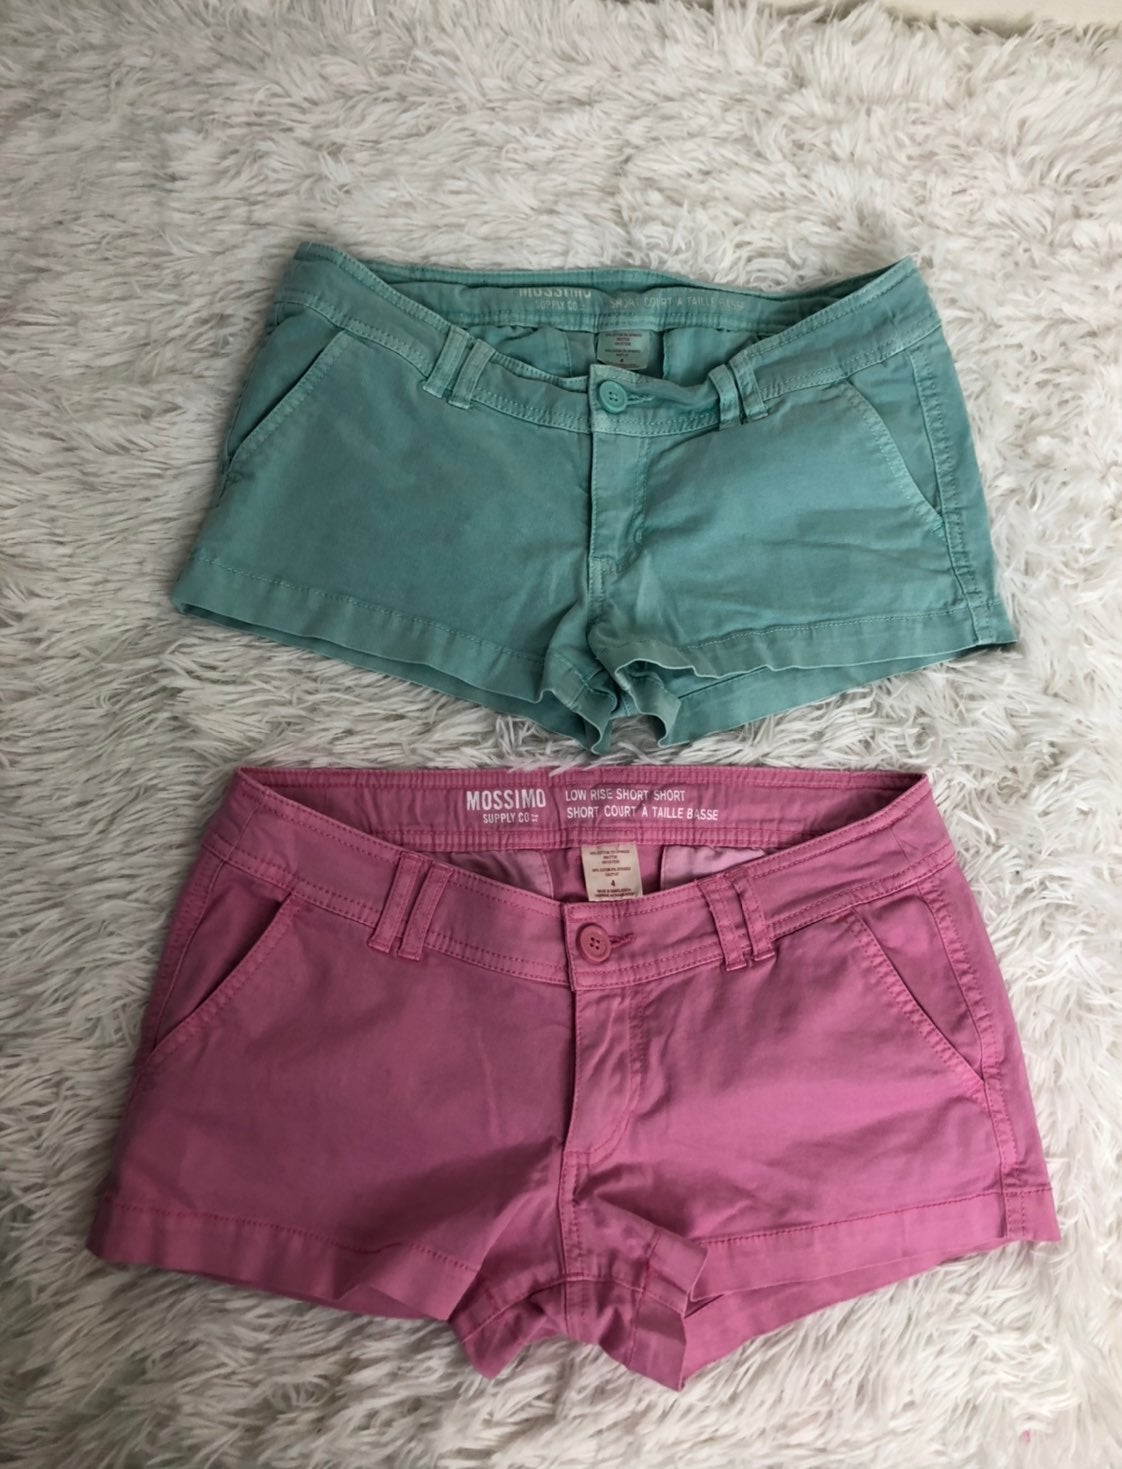 Mossimo Lot 2 Low Rise Short Jean Shorts